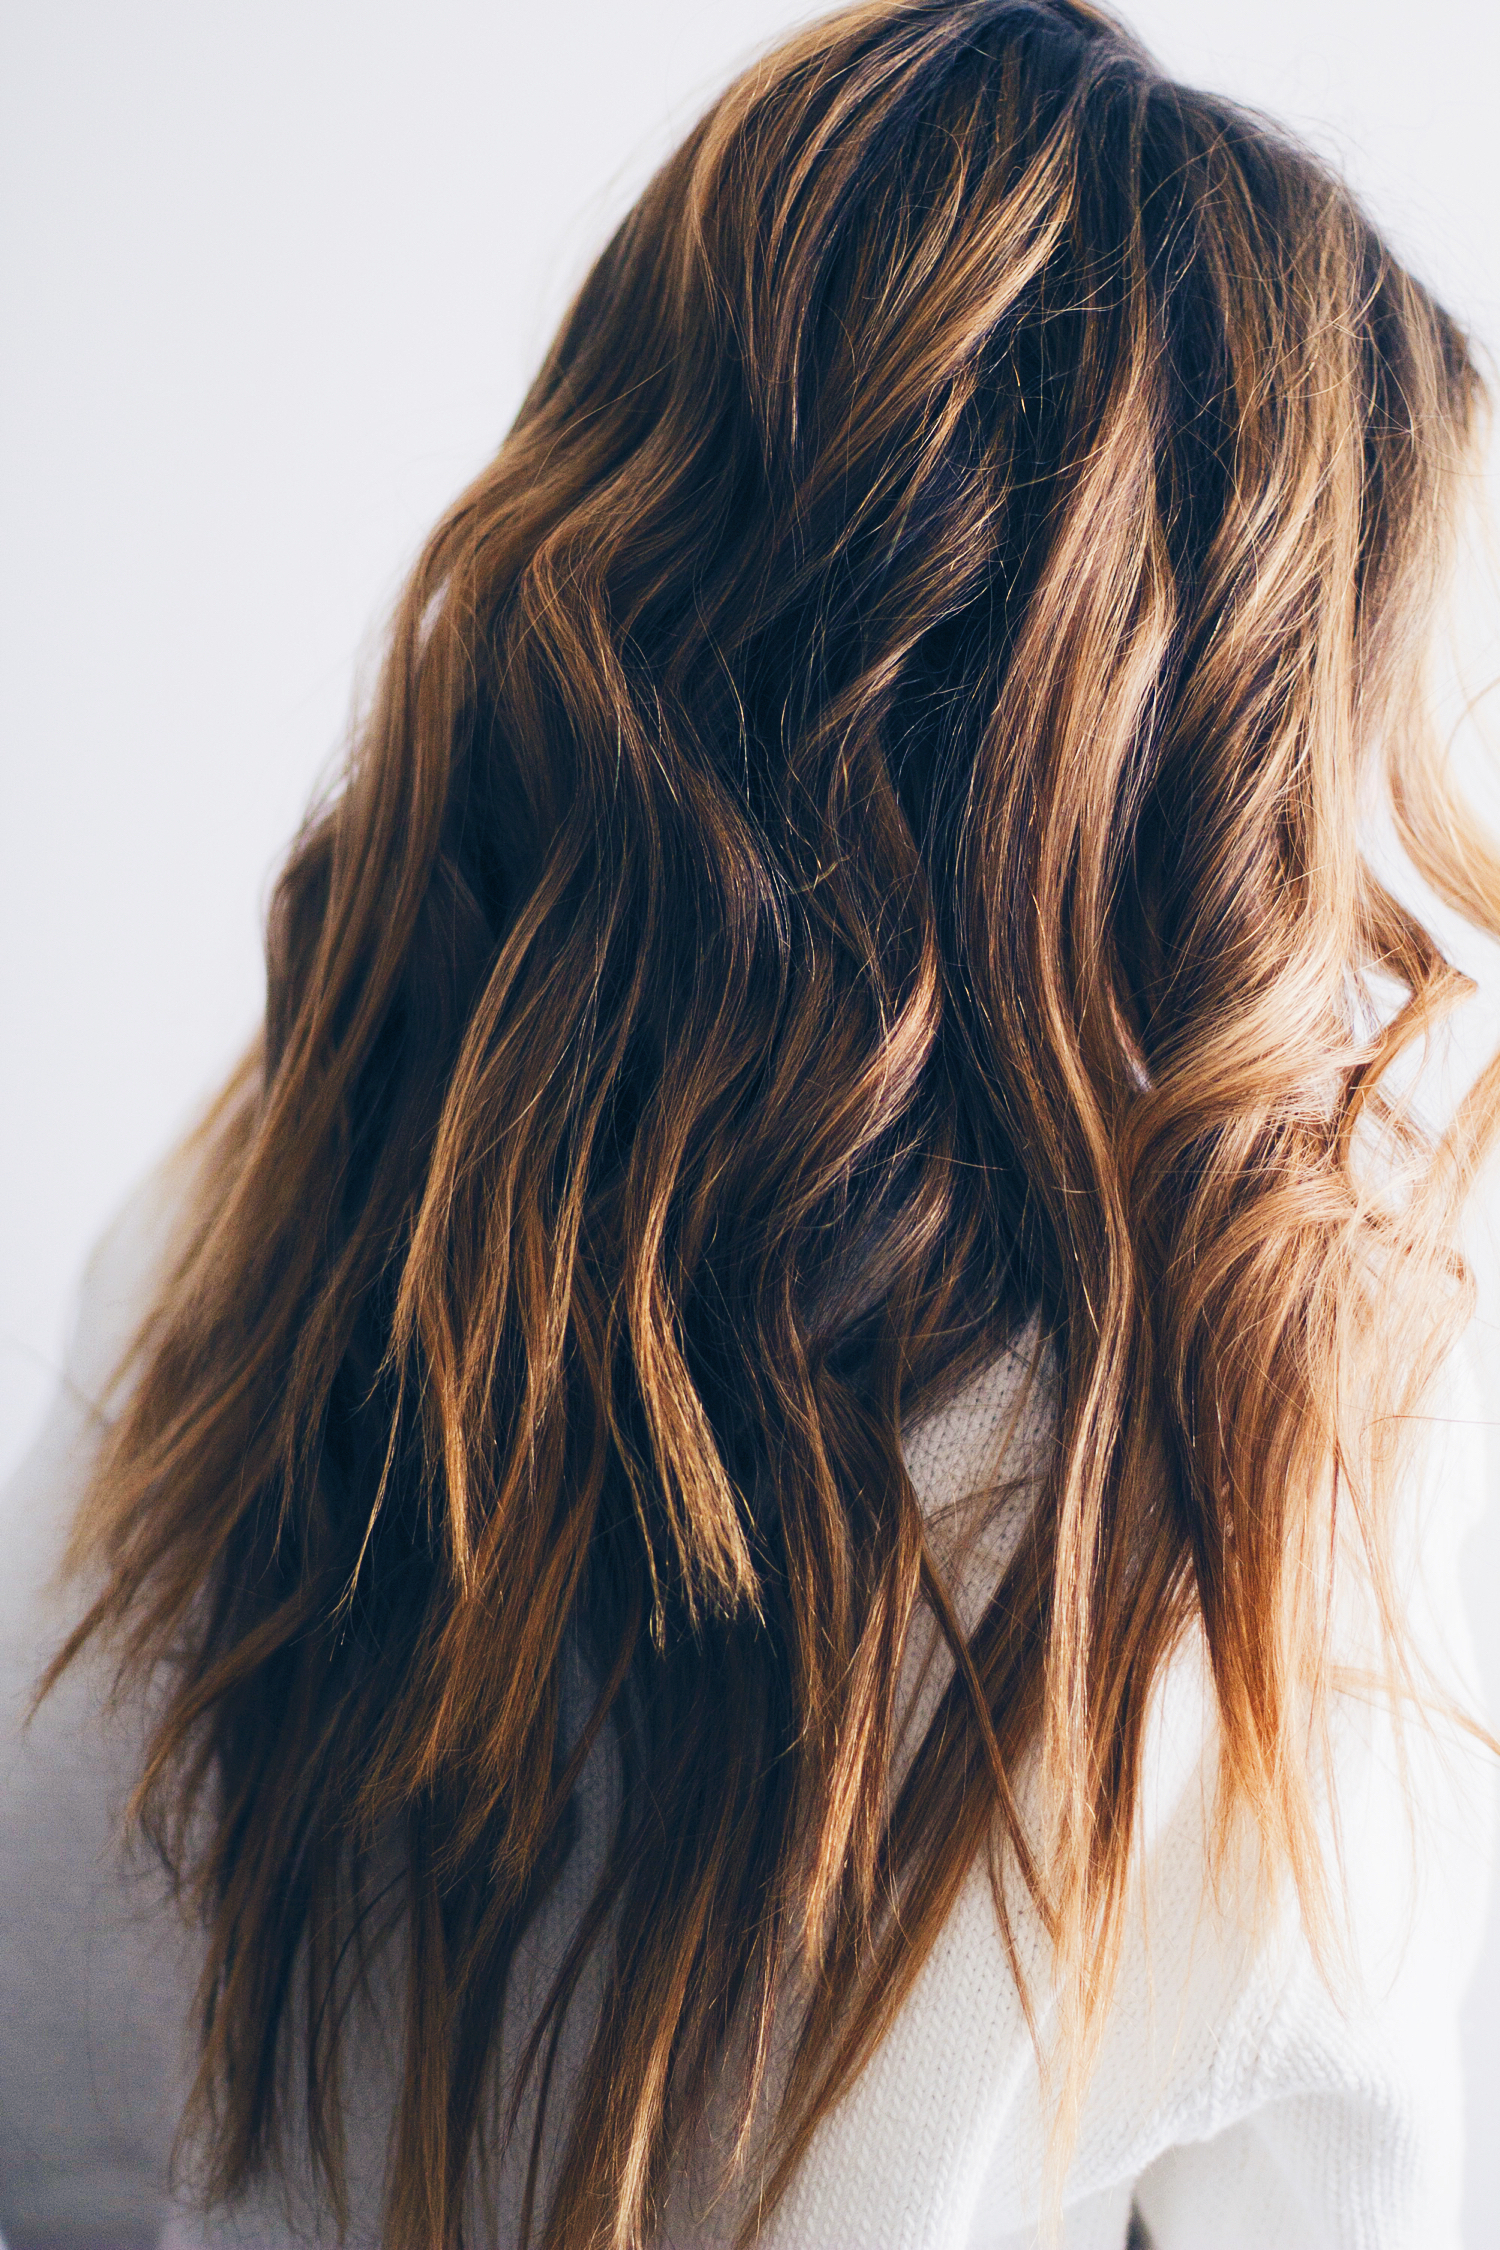 2019 Messy Hairstyles With Beachy Waves Inside My Beachy Waves Hair Tutorial – Lindsay Marcella (View 16 of 20)